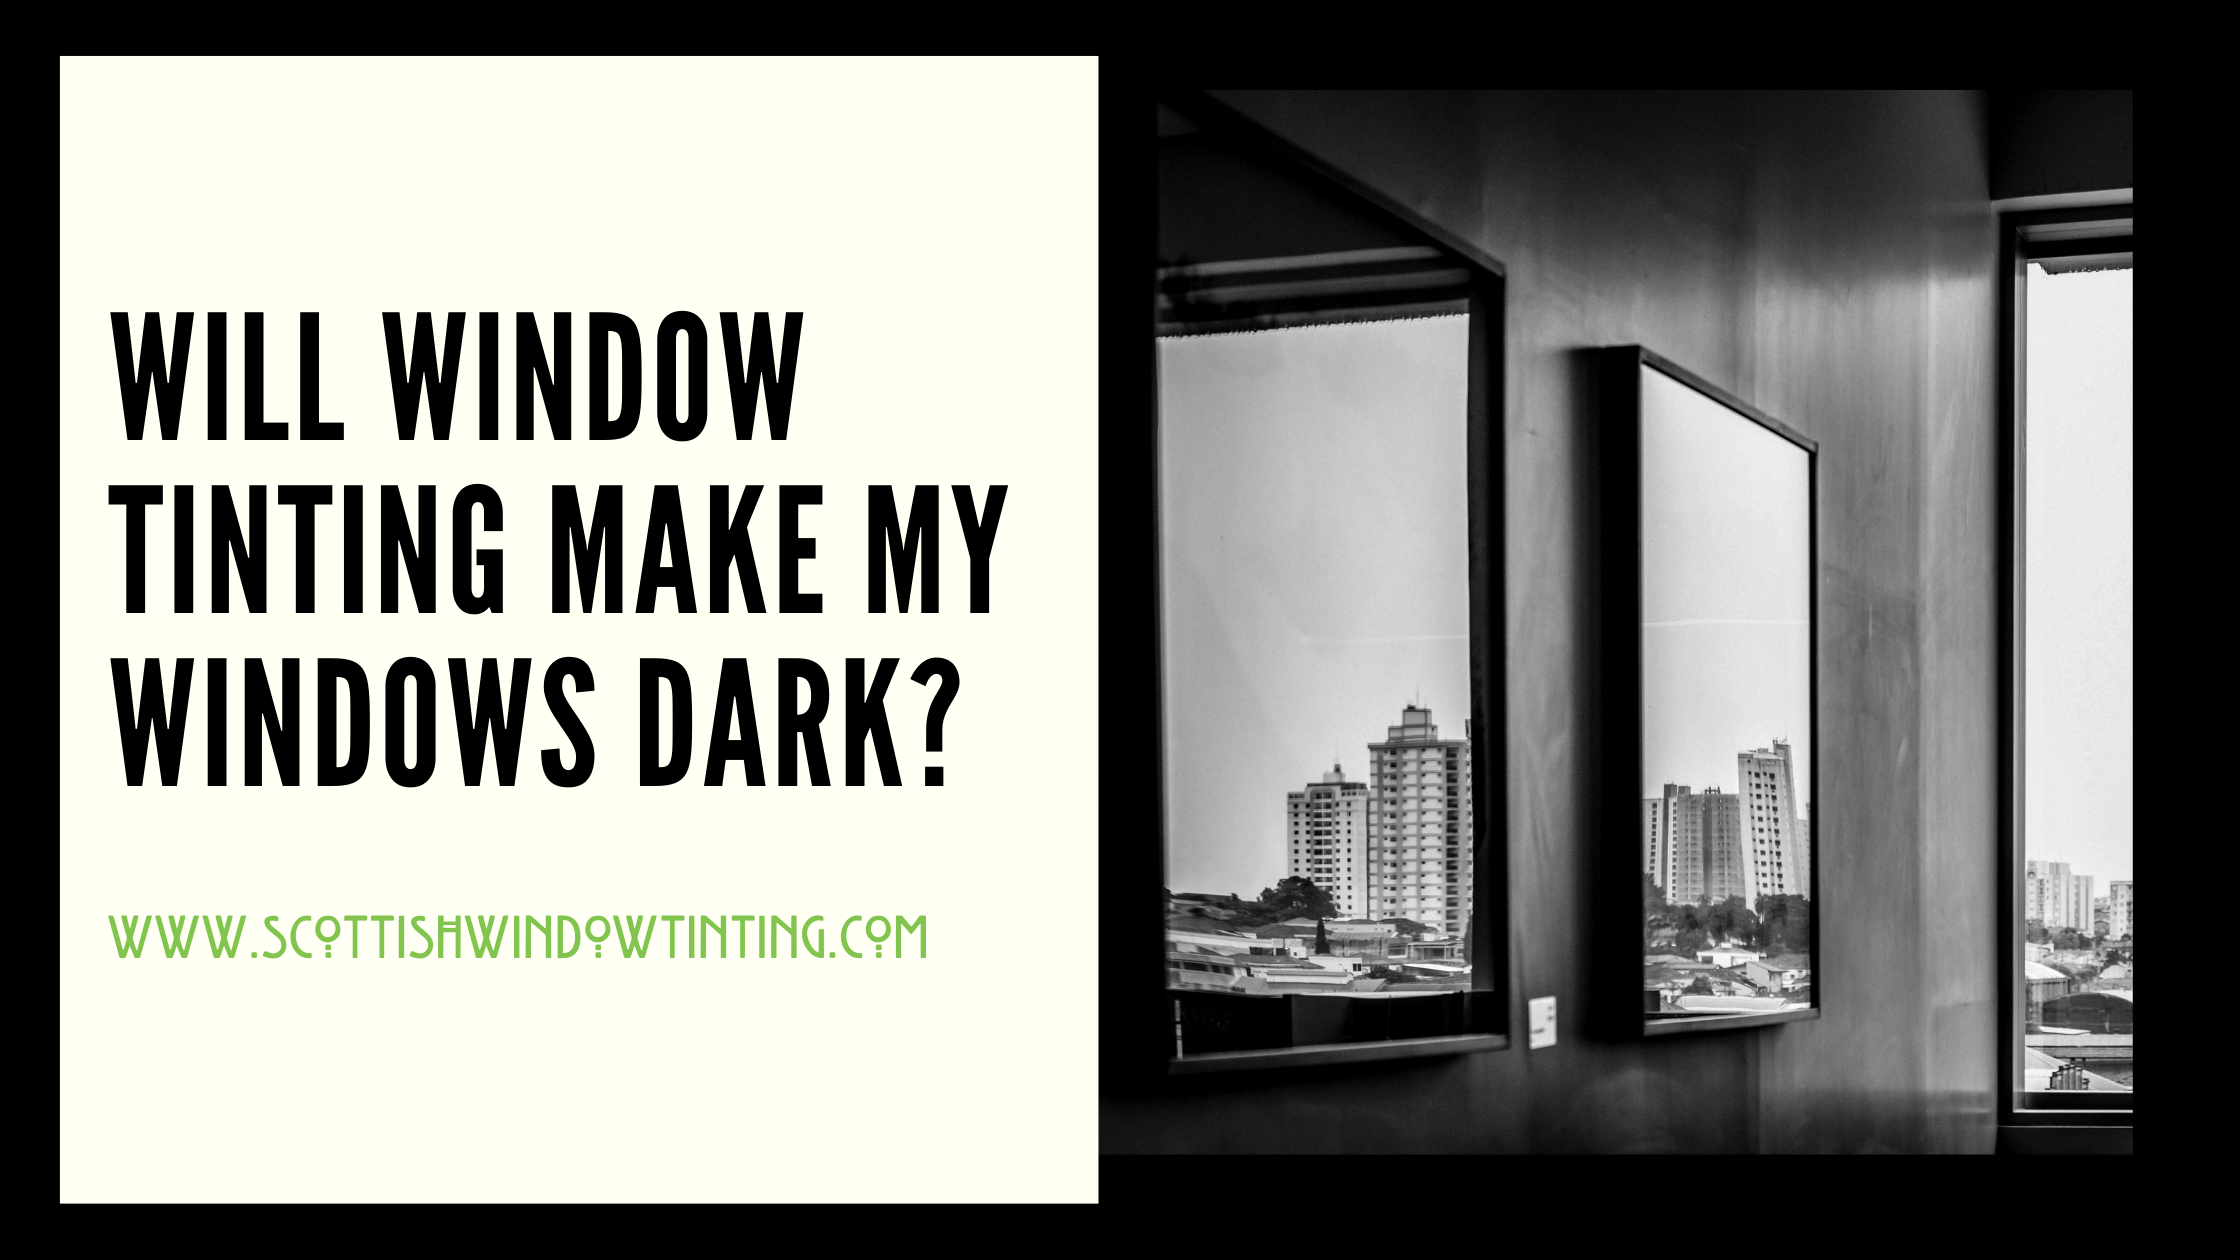 Will Window Tinting Make My Windows Dark?